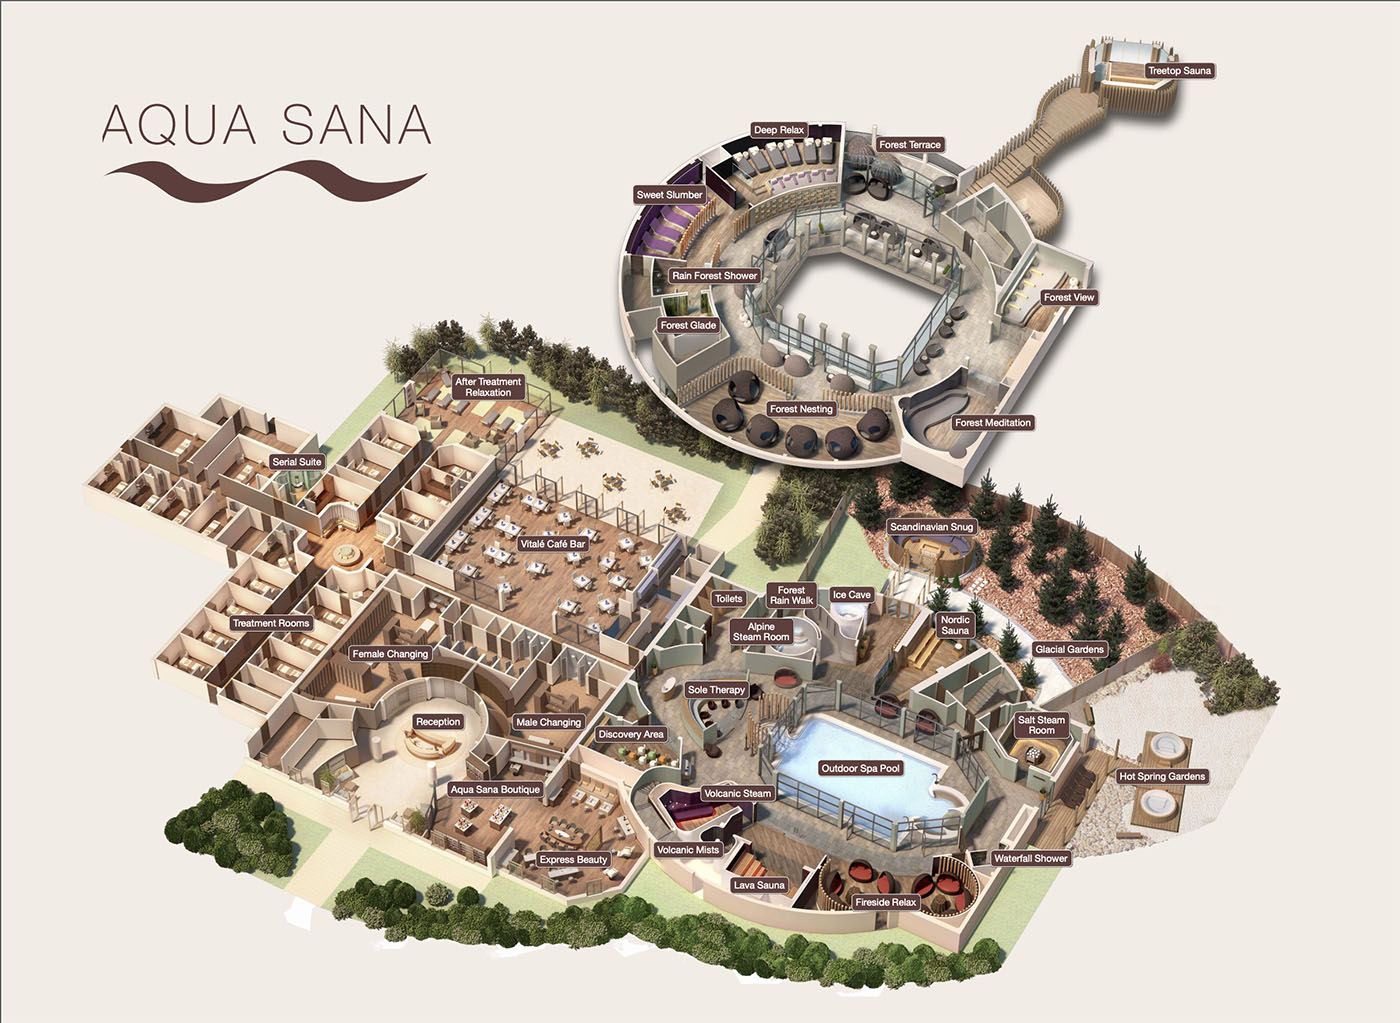 Illustrated map of the layout of the Aqua Sana Spa in Sherwood Forest Centerparcs